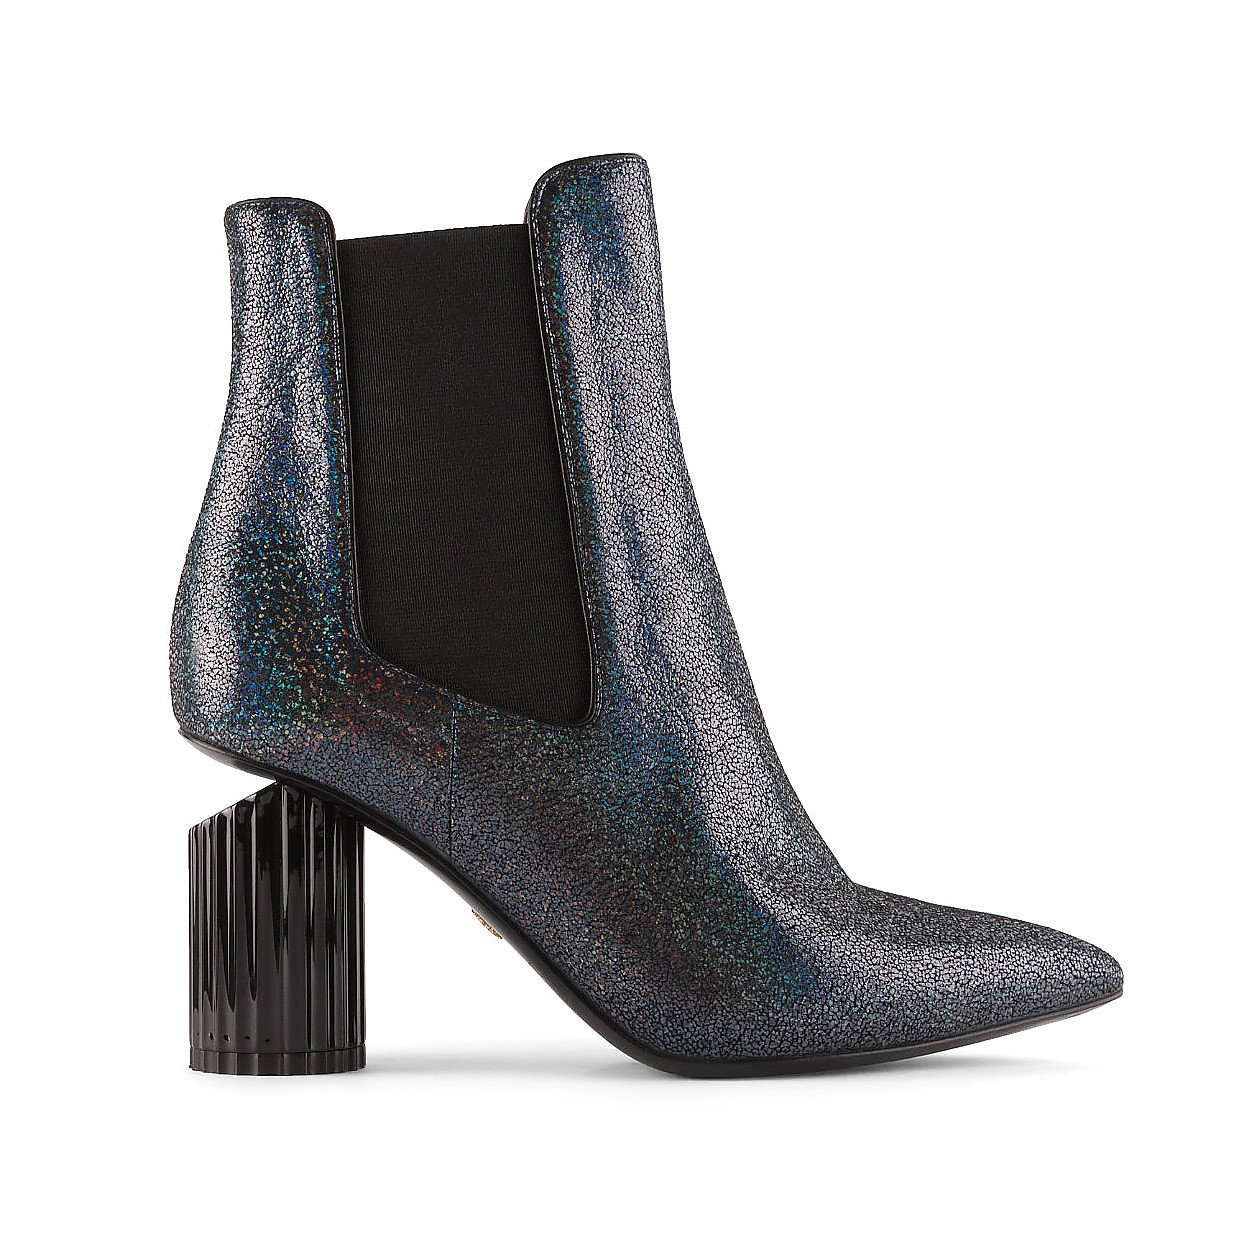 Roberto Cavalli Glittered Leather Boots With Cut Out Heel